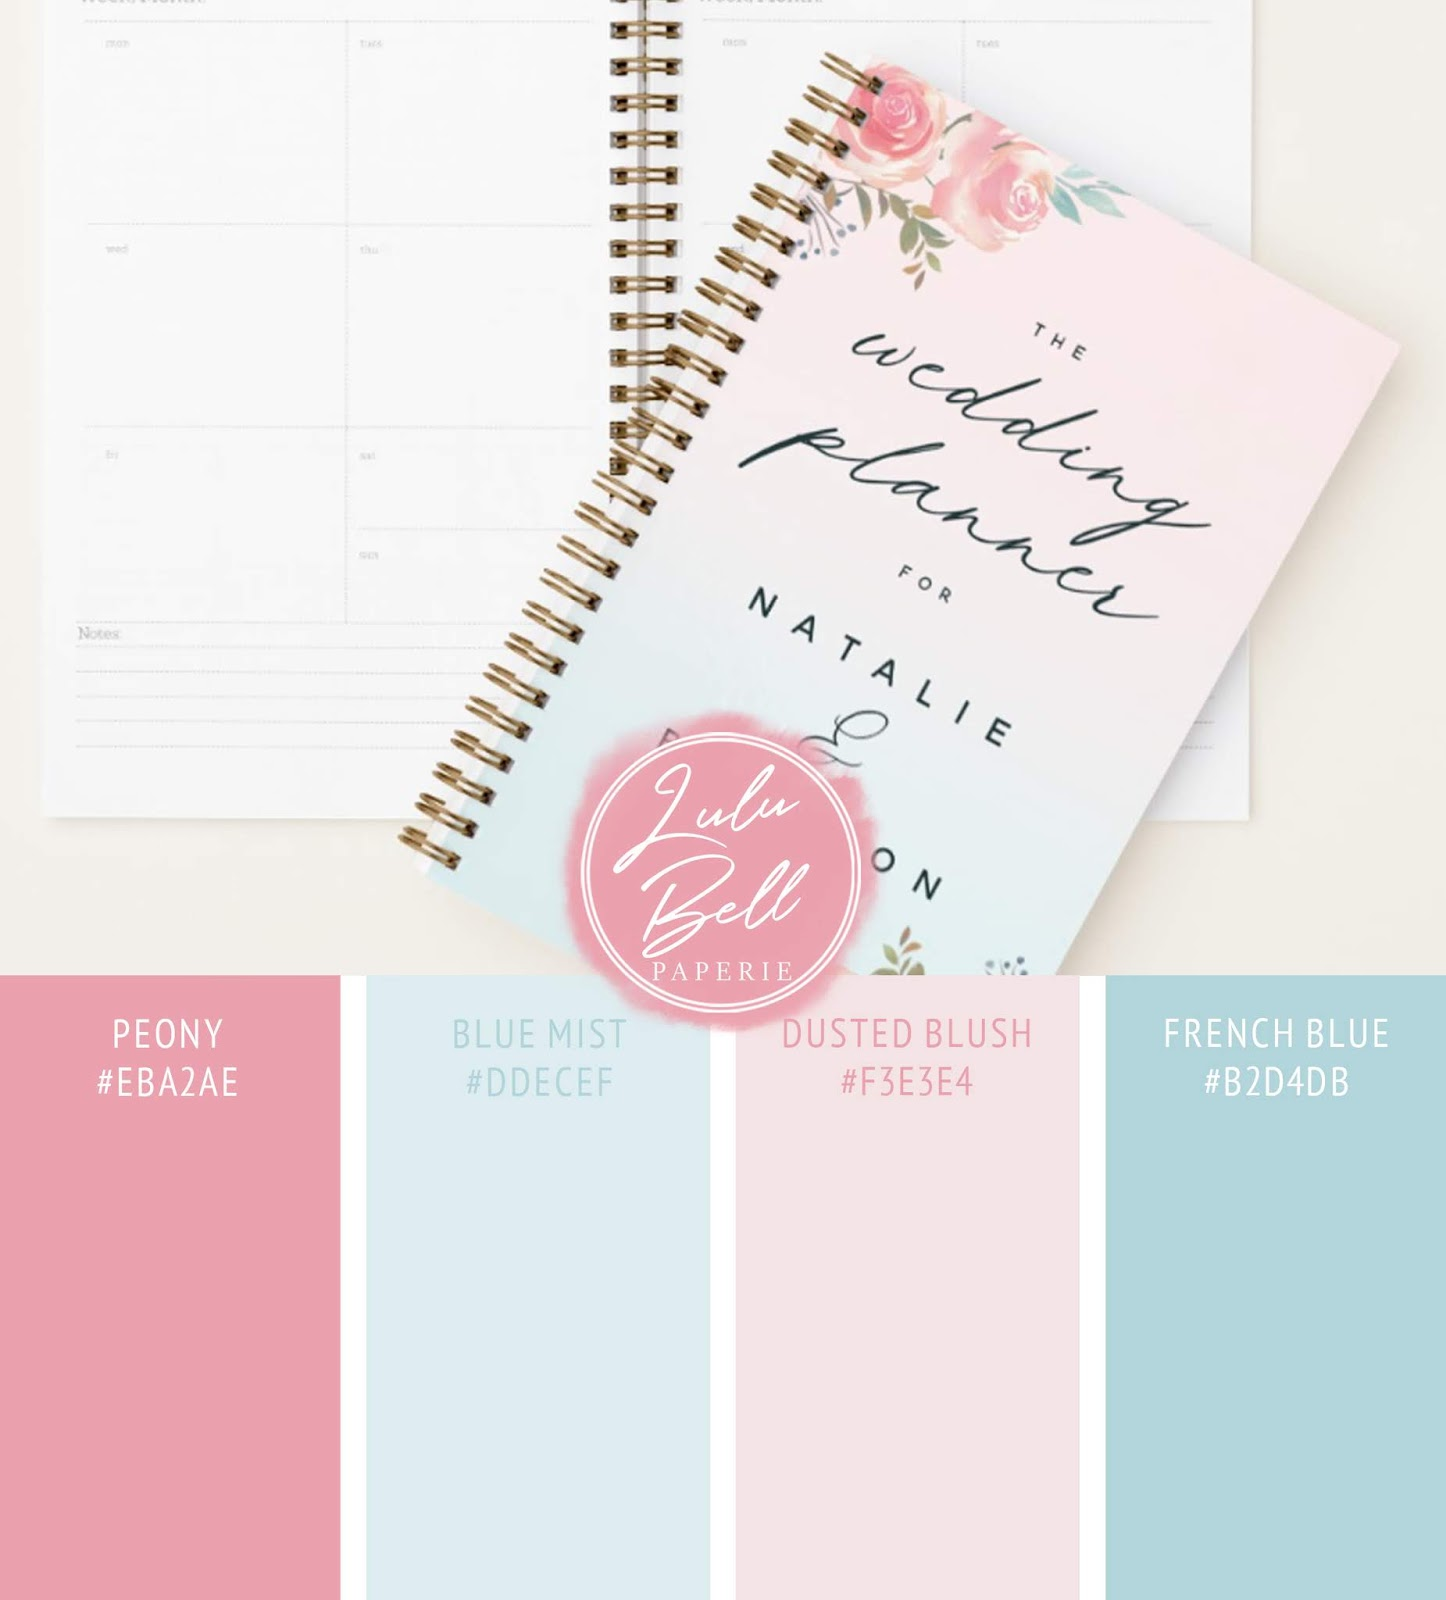 French Garden Floral Wedding Suite - Chic Personalized Wedding Planner Book and Color Swatches